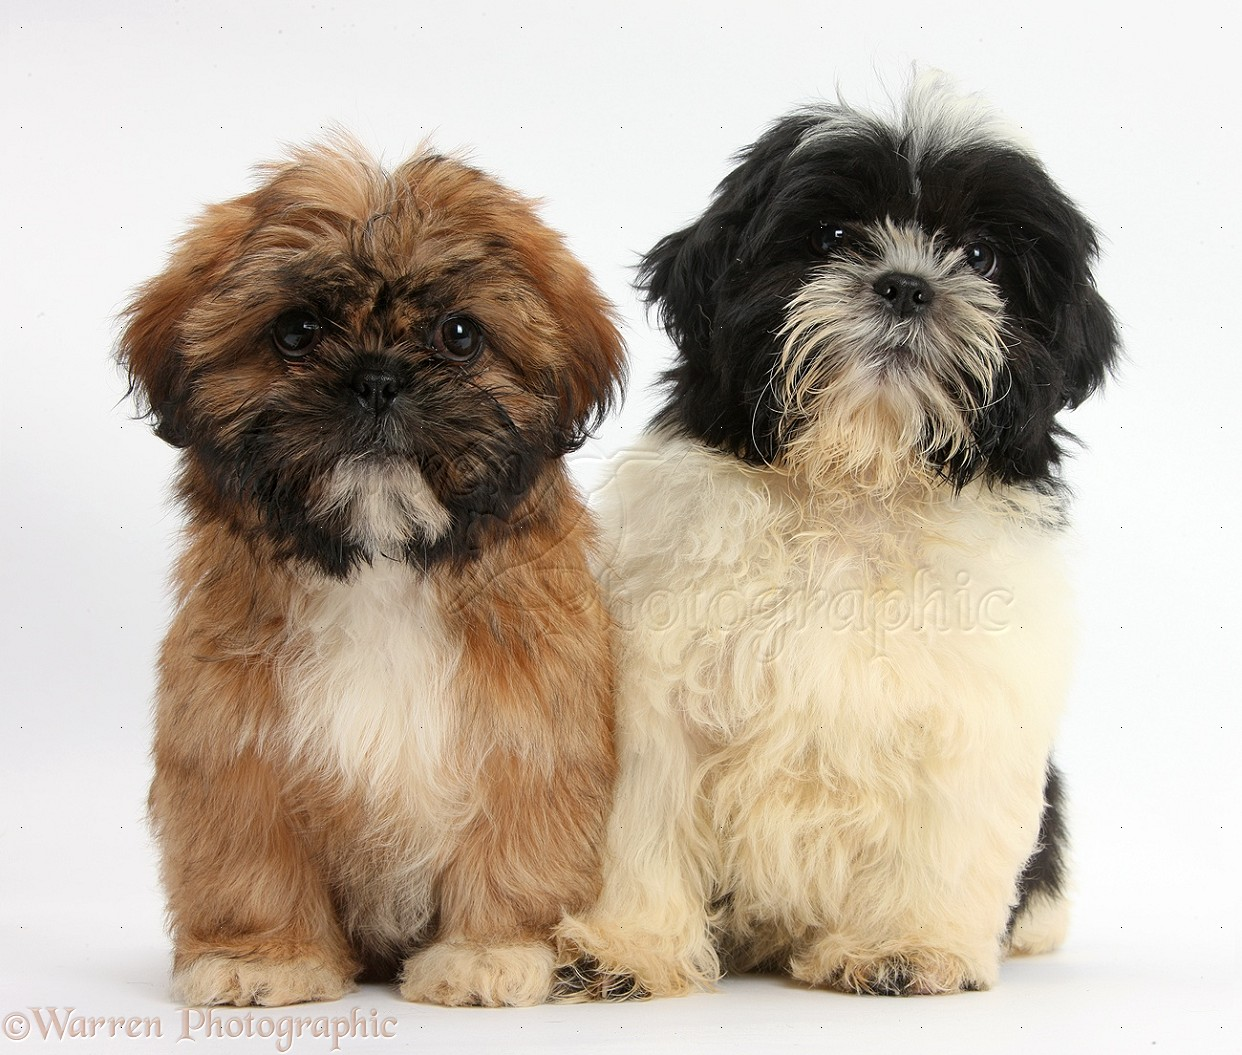 Dogs: Brown and black-and-white Shih-tzu puppies photo WP38314